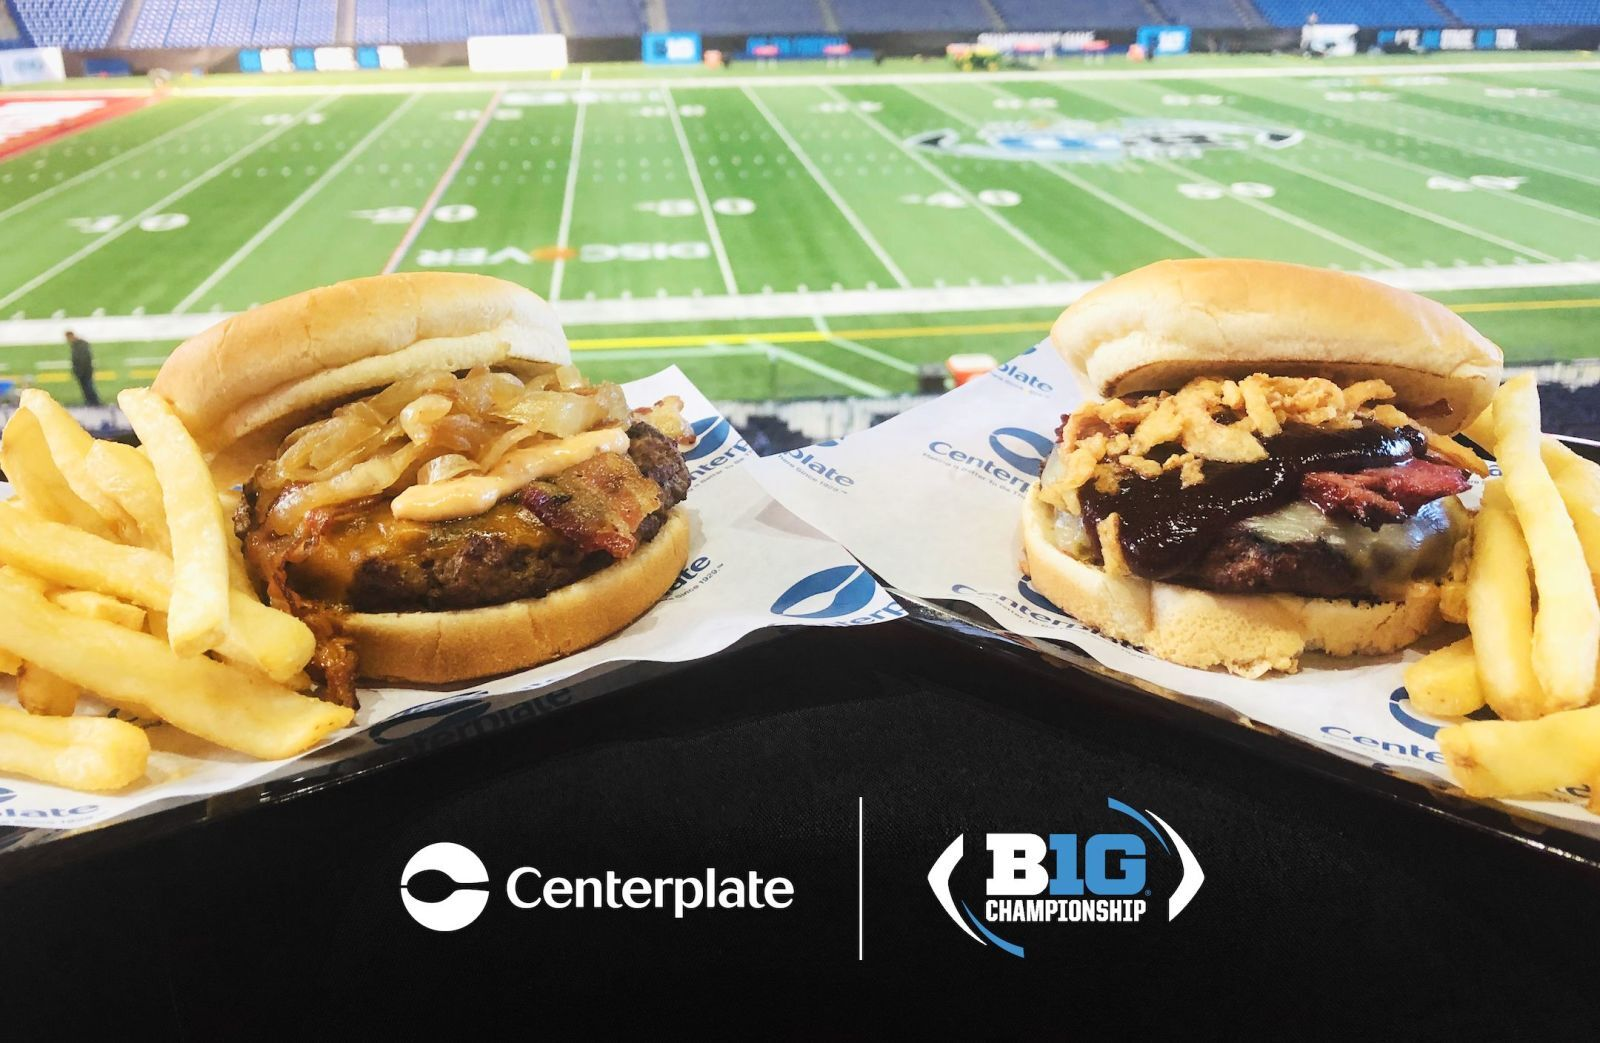 Battle of the Big Ten Championship burgers, which burger earns the win?